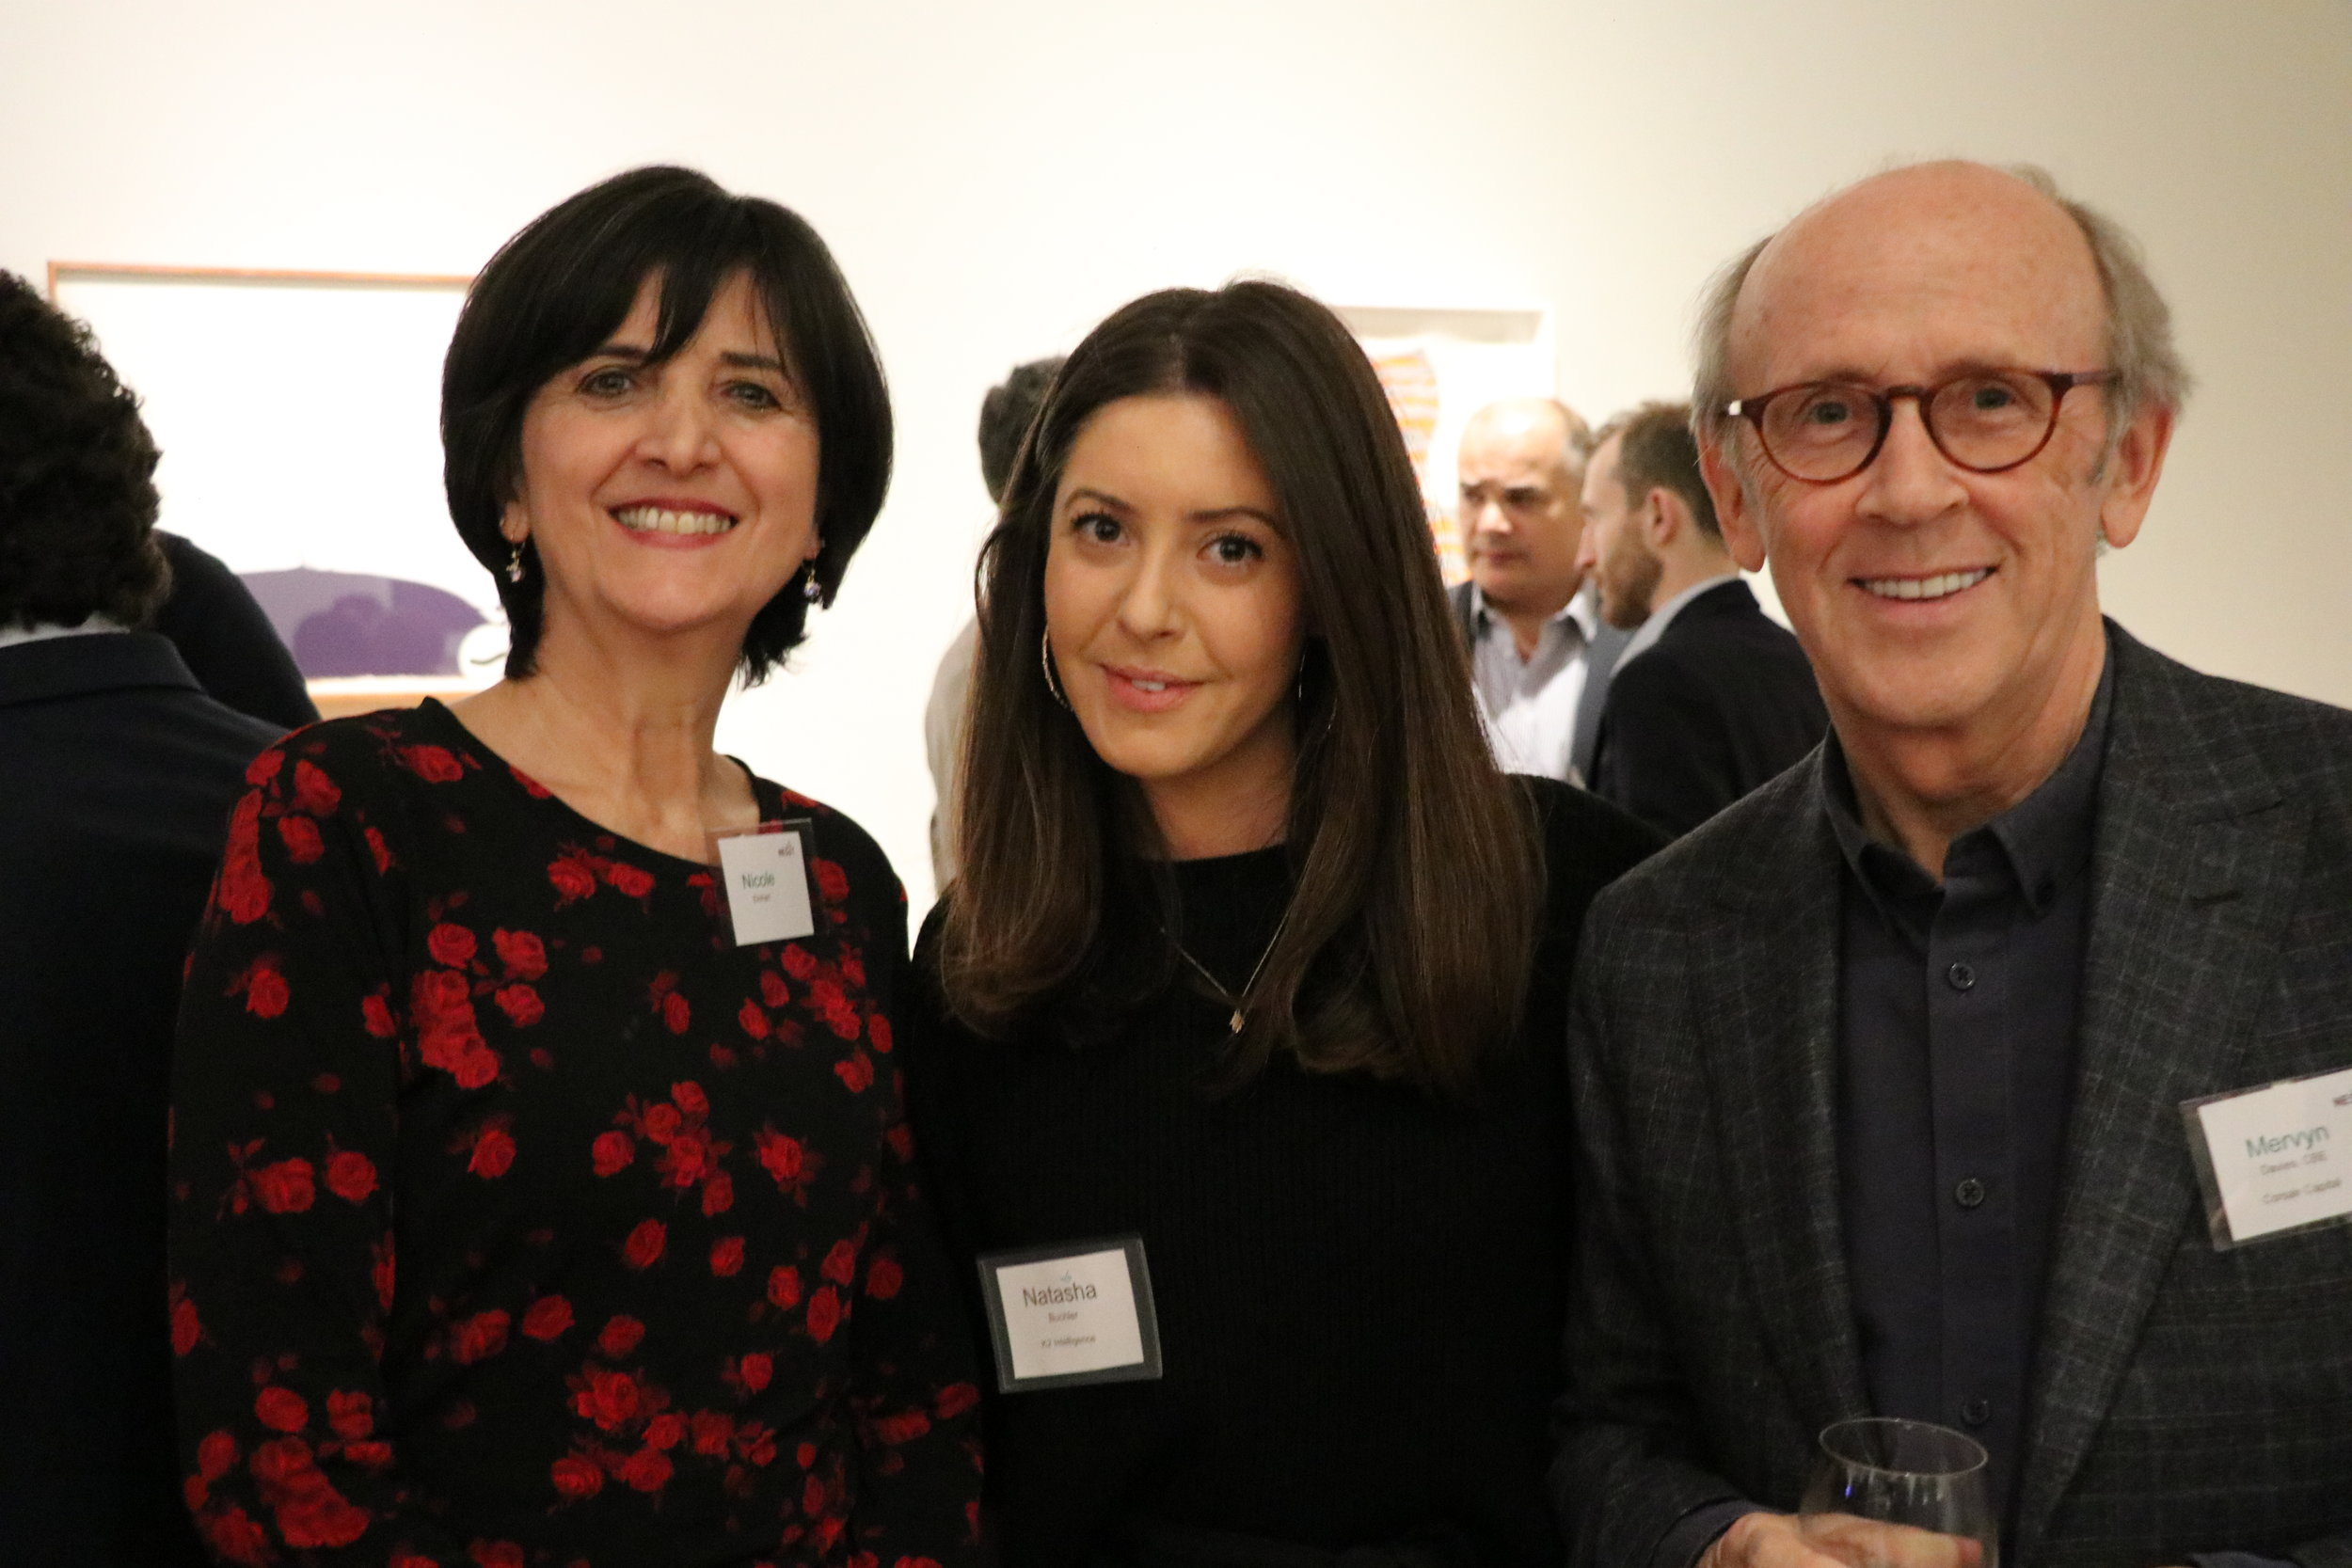 Nicole Etchart, Co-Founder of NESsT, Natasha Buchler, Founder of AKOJO Market, and Lord Davies of Abersoch, CBE, Chairman of Corsair Capital    NESsT Private Reception at Royal Academy of Arts in London